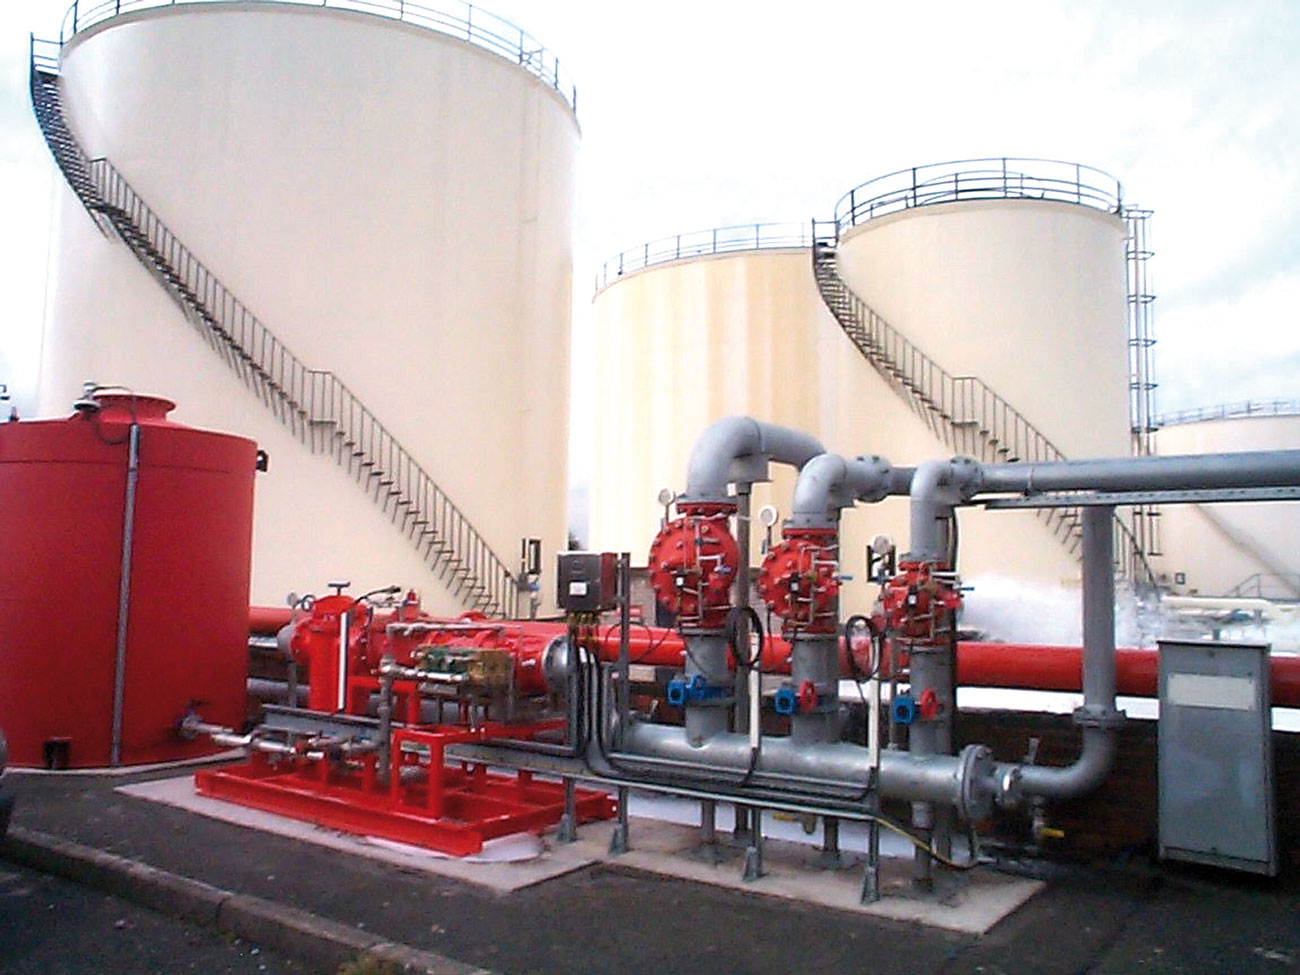 Fig. 4: Tank farm with water motor driven proportioning pump and foam concentrate container.